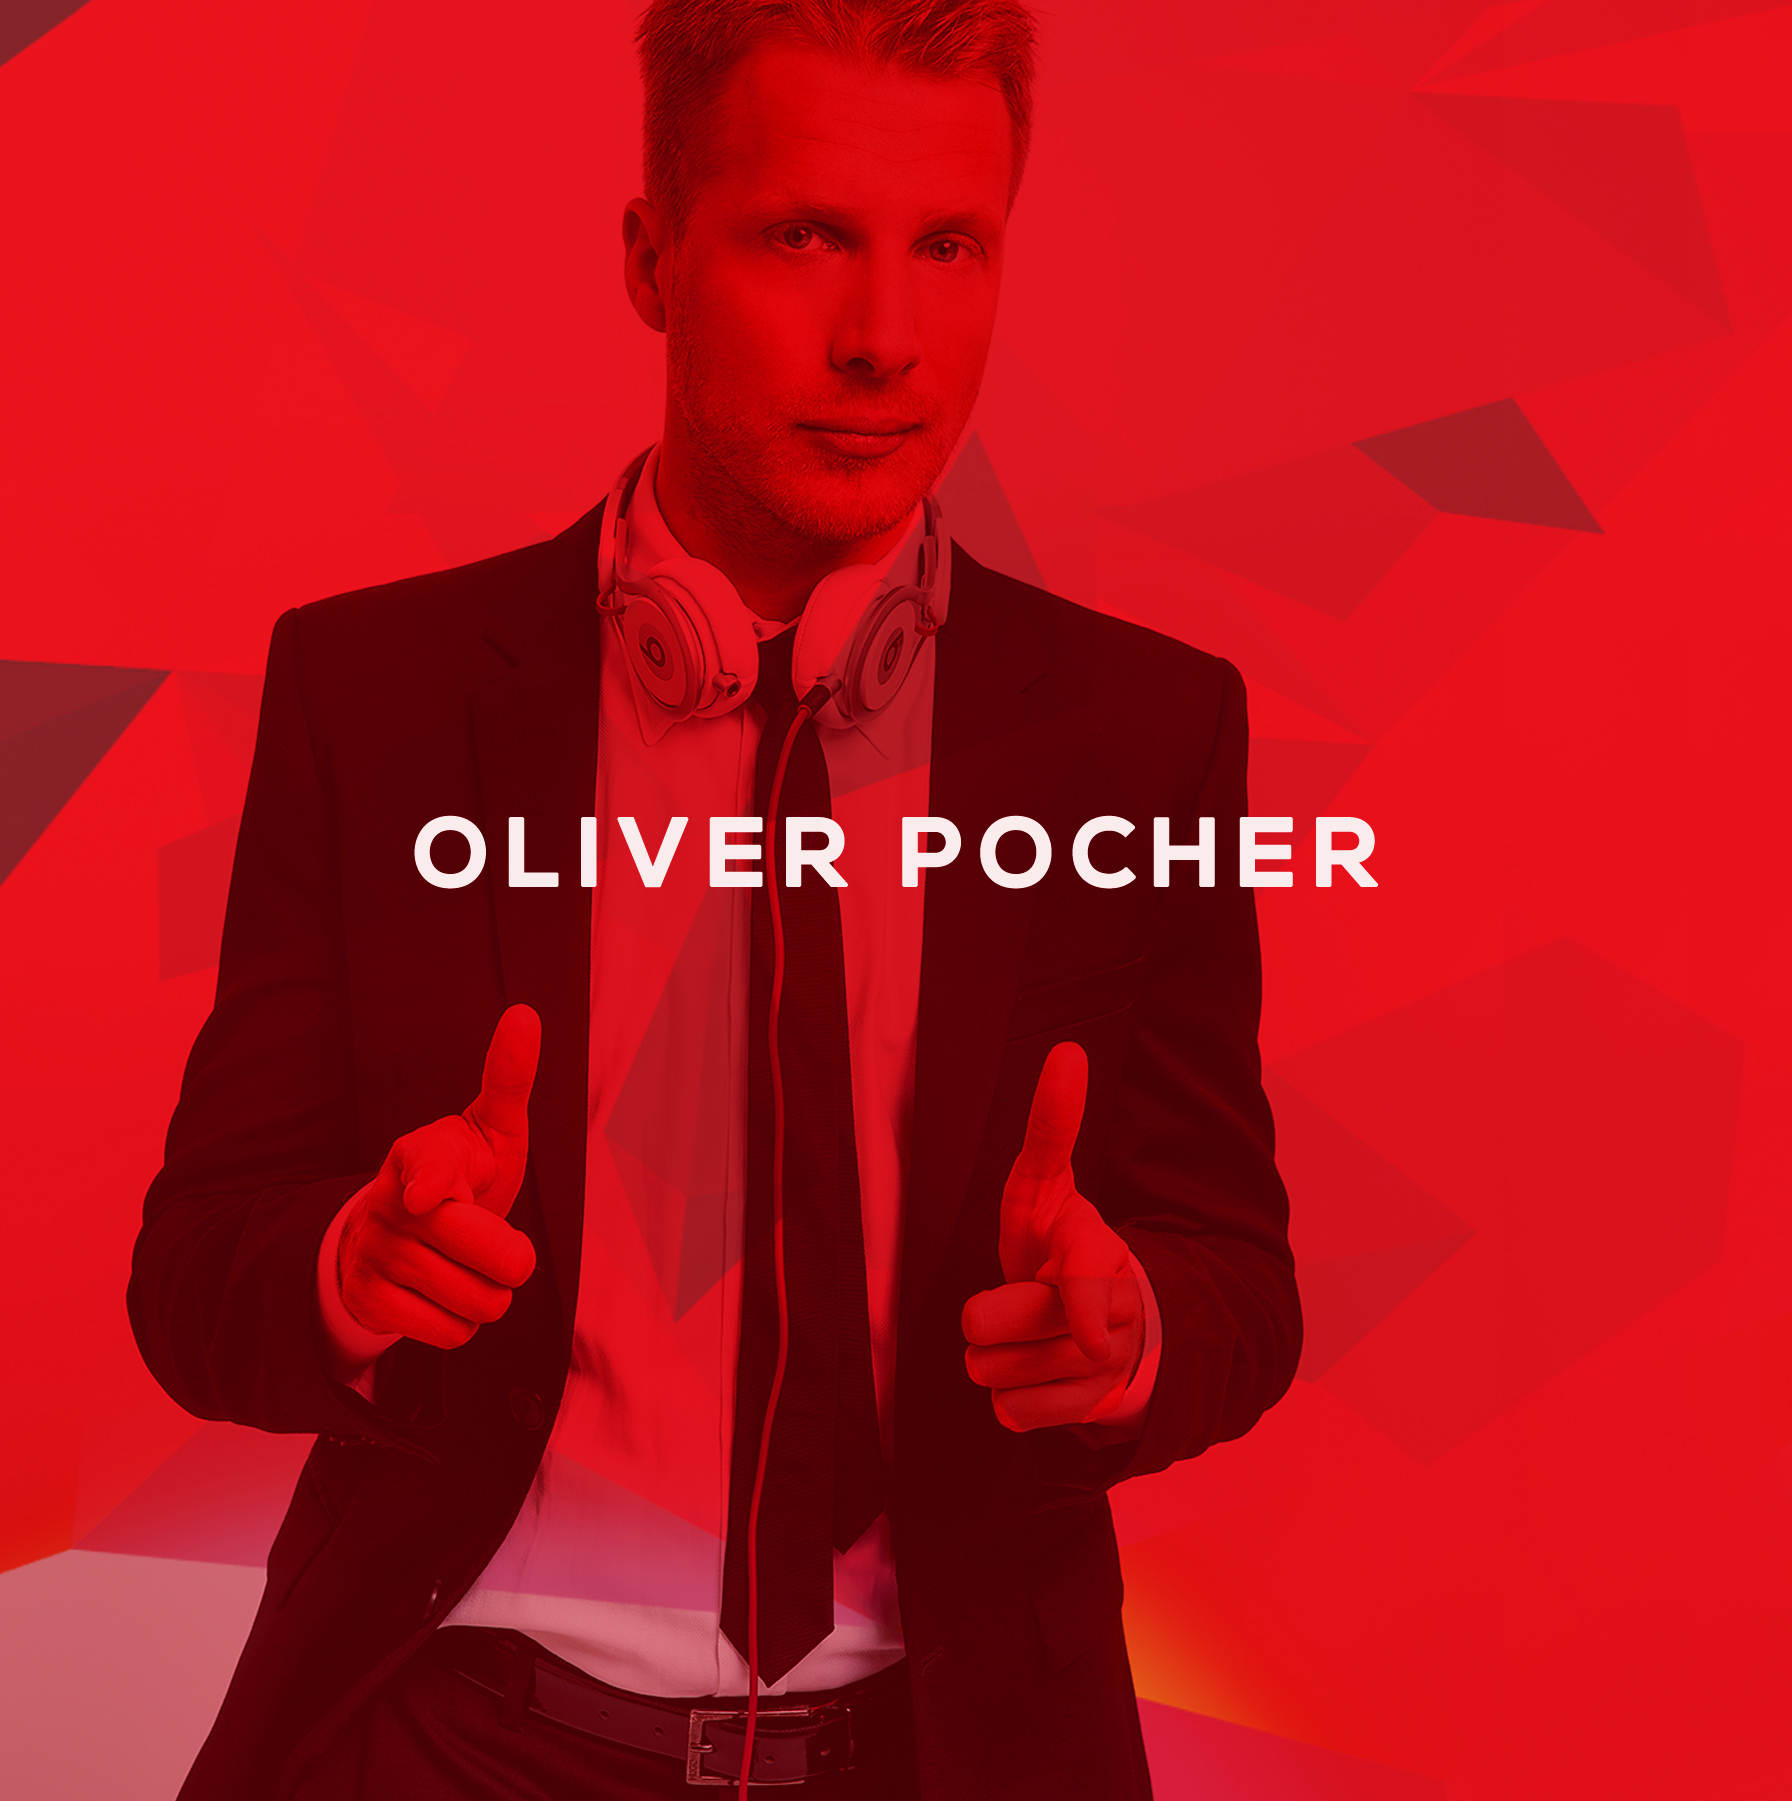 HP-Act-oliver-pocher